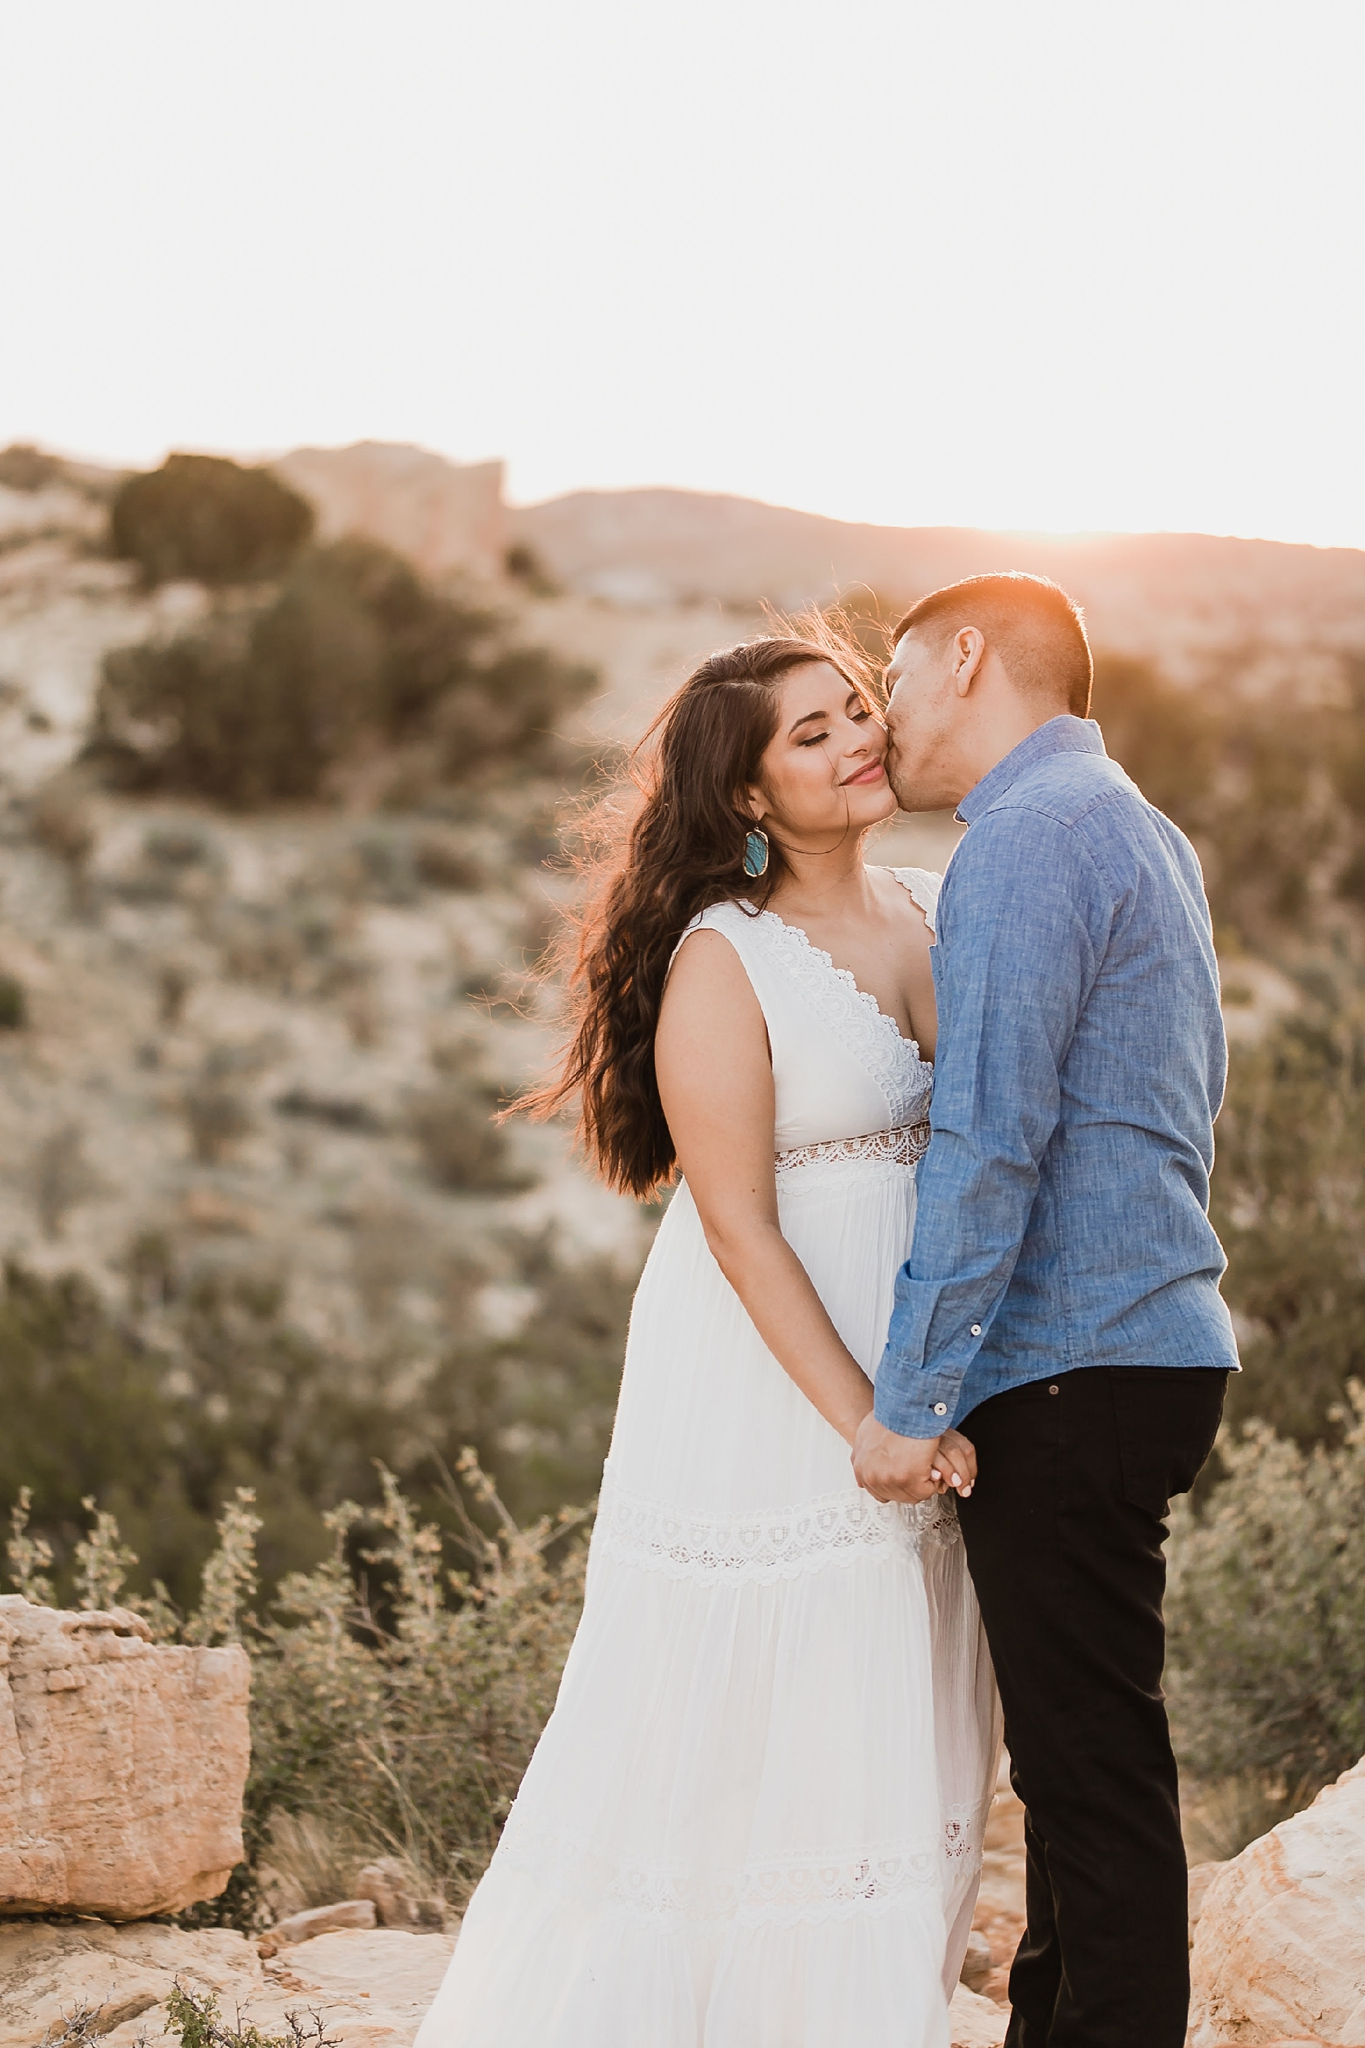 Alicia+lucia+photography+-+albuquerque+wedding+photographer+-+santa+fe+wedding+photography+-+new+mexico+wedding+photographer+-+new+mexico+wedding+-+wedding+makeup+-+makeup+artist+-+wedding+makeup+artist+-+bridal+makeup_0016.jpg